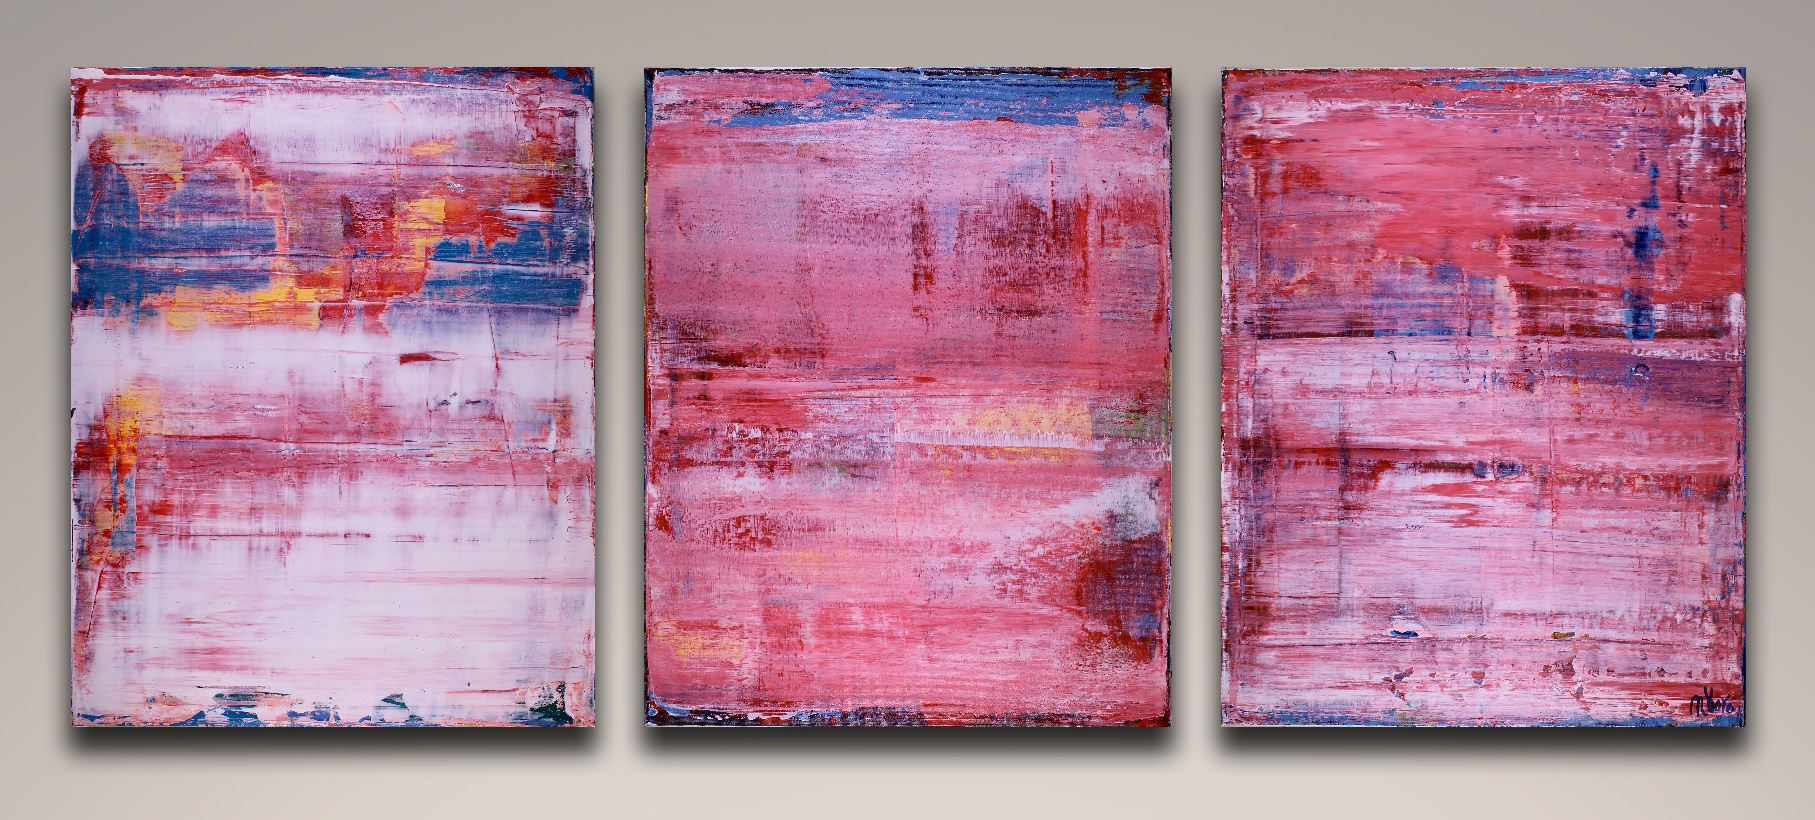 SOLD - Pretty in Pink - Triptych by Nestor Toro / Los Angeles